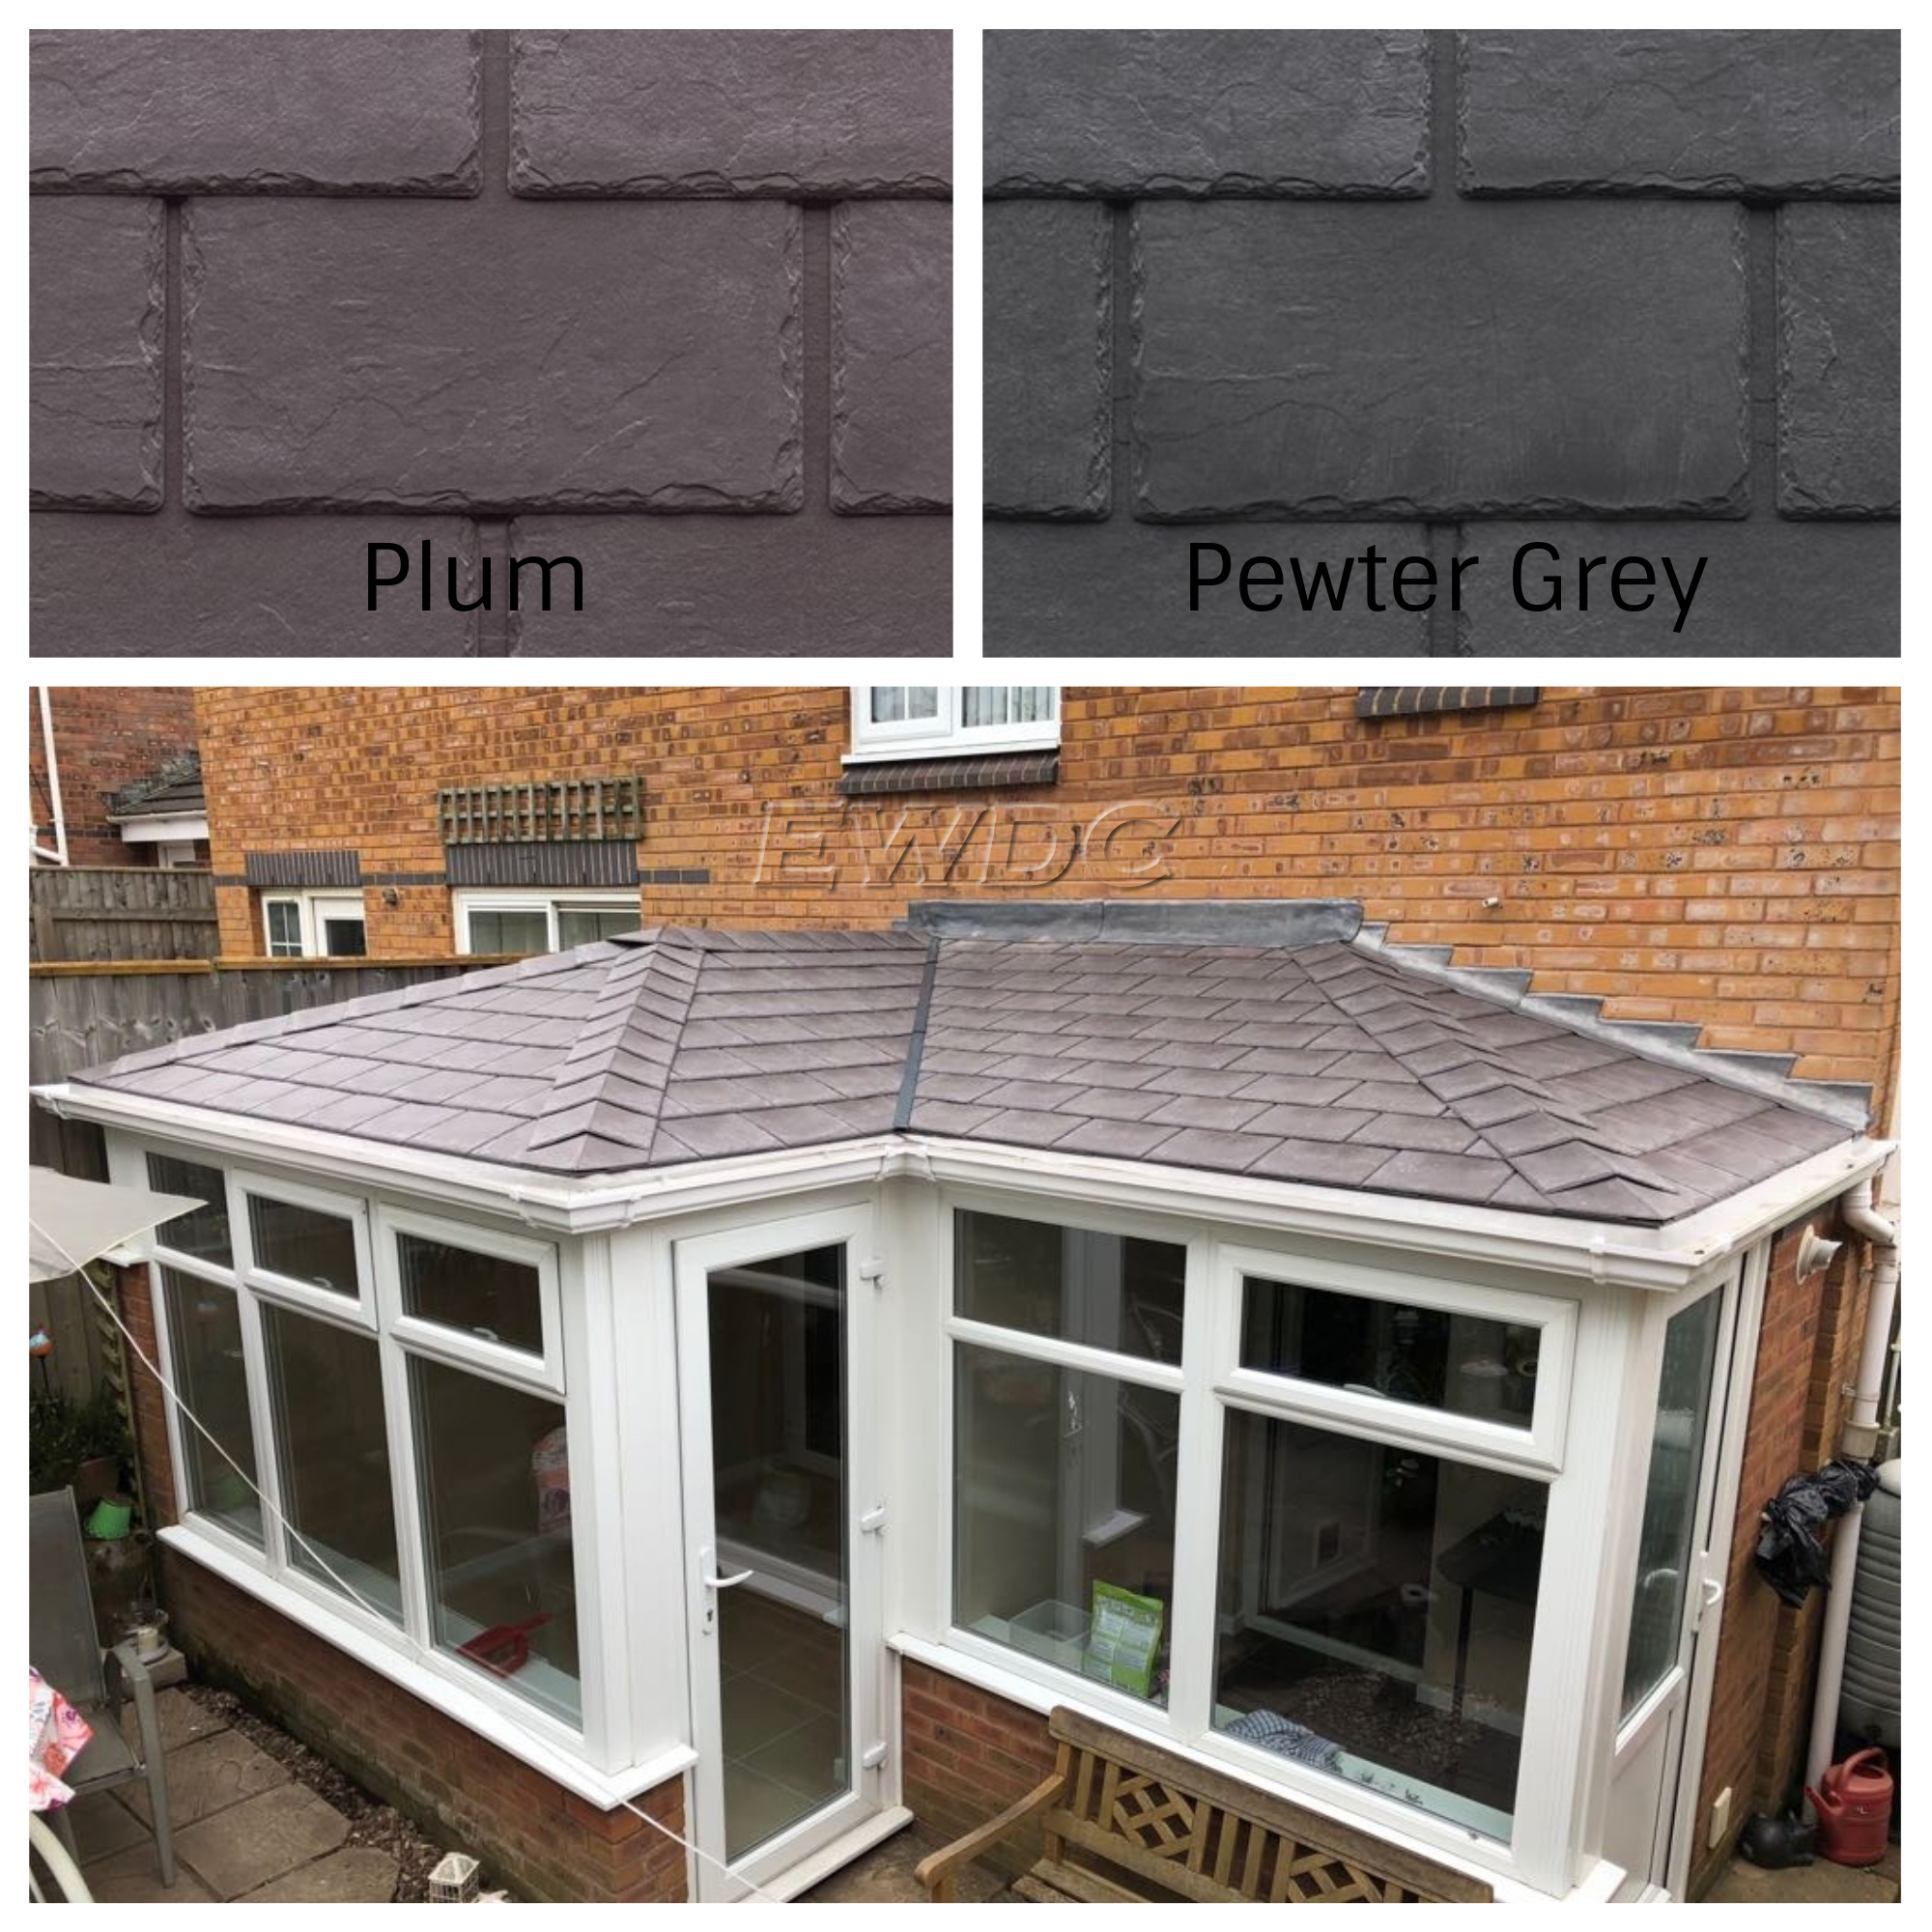 Guardian Before & After | Exe Windows Doors and Conservatories